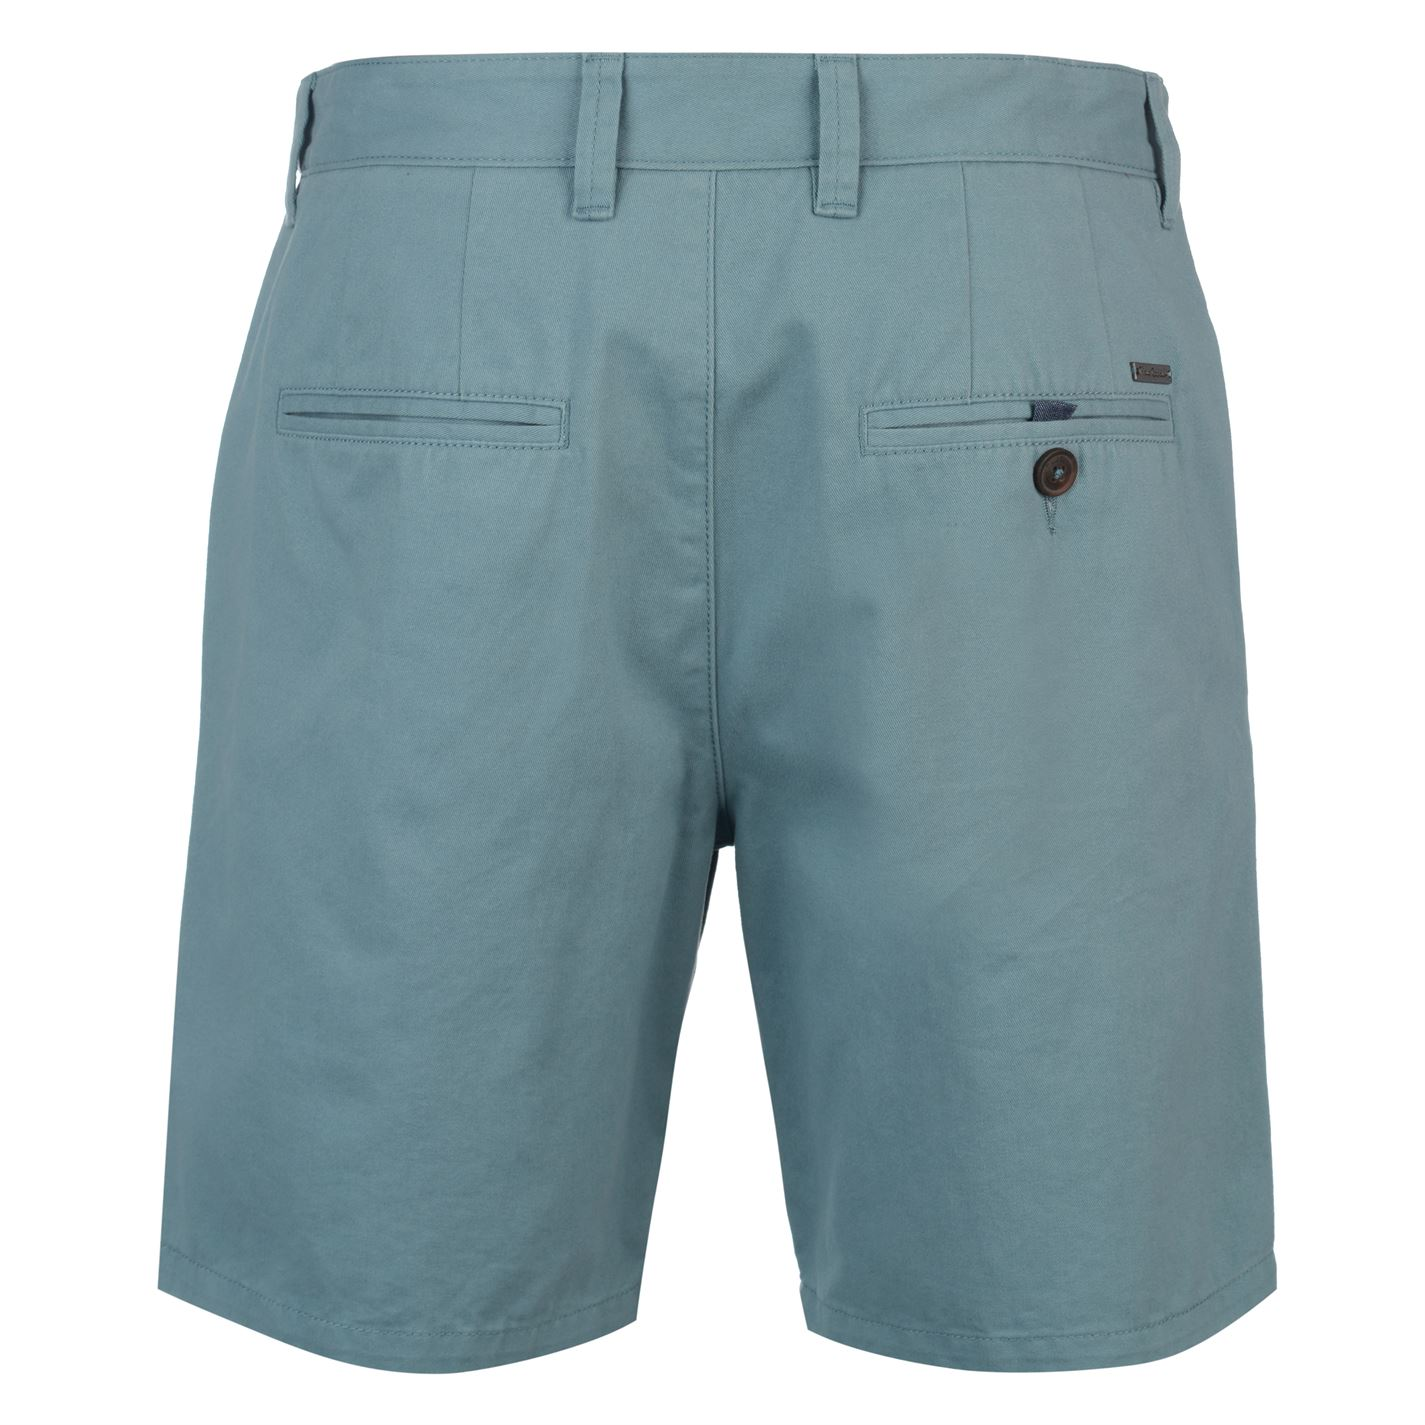 Pierre Cardin Chino Shorts Mens Gents Chinos Trousers Pants Bottoms Cotton